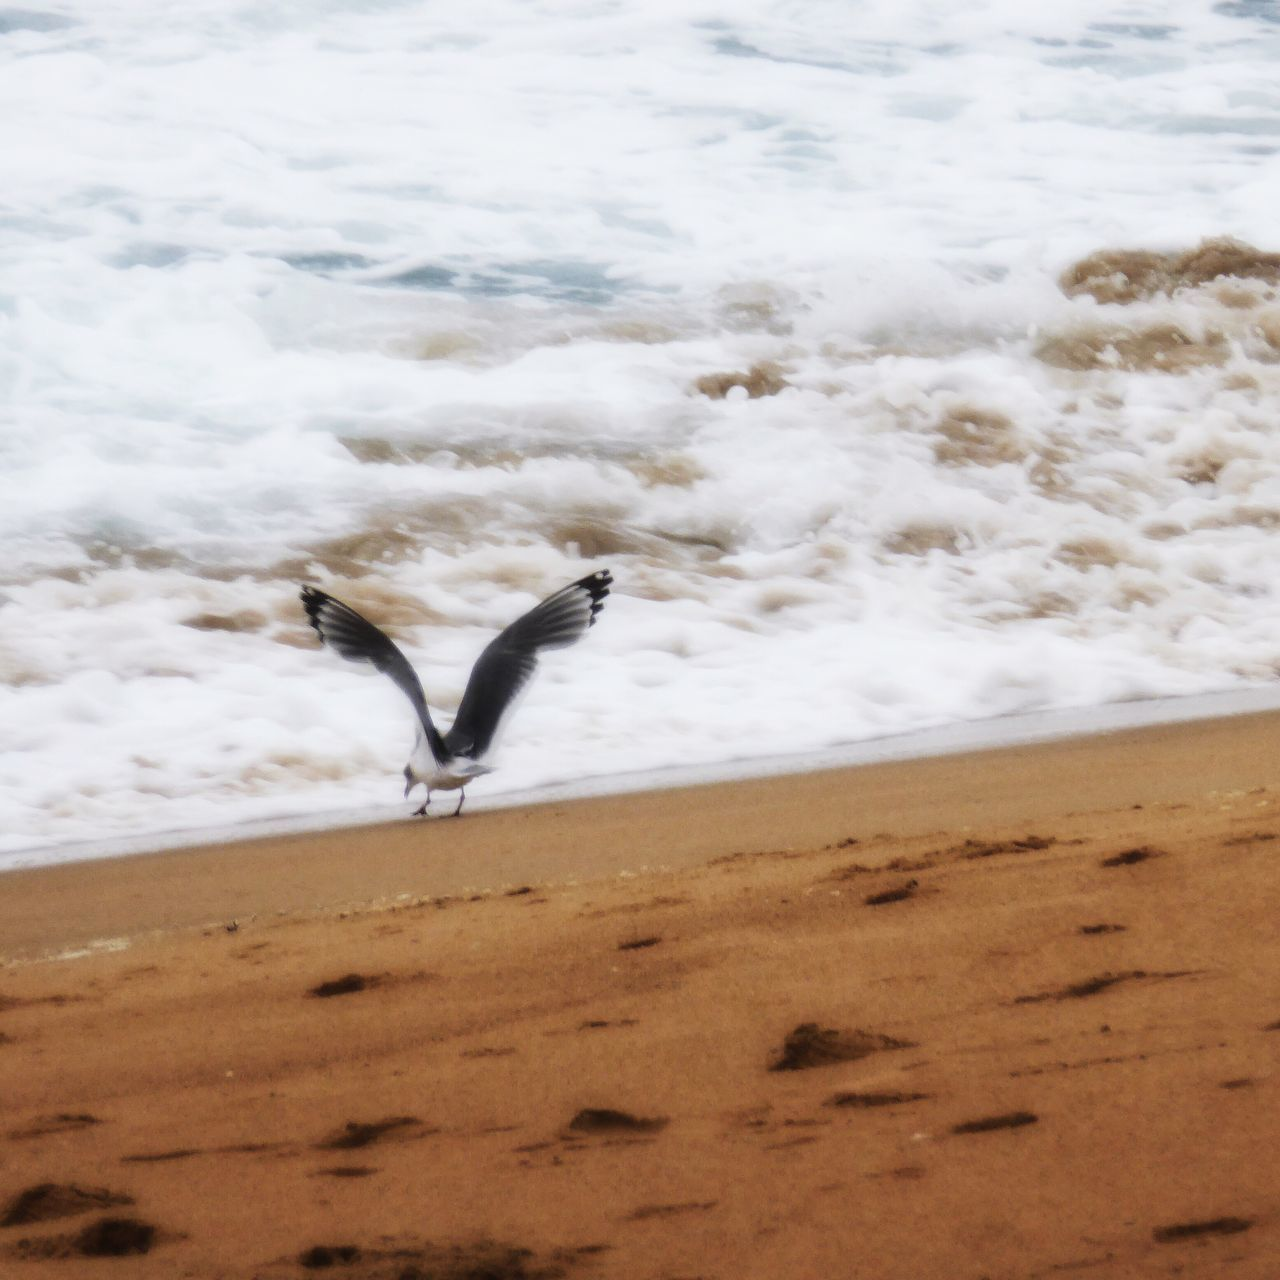 Spread Wings At The Beach Animal Themes One Animal Bird Beach Sand Nature Animals In The Wild Footprints In The Sand Bird Eating Bird Landing Water No People Animal Wildlife Beauty In Nature Scenics